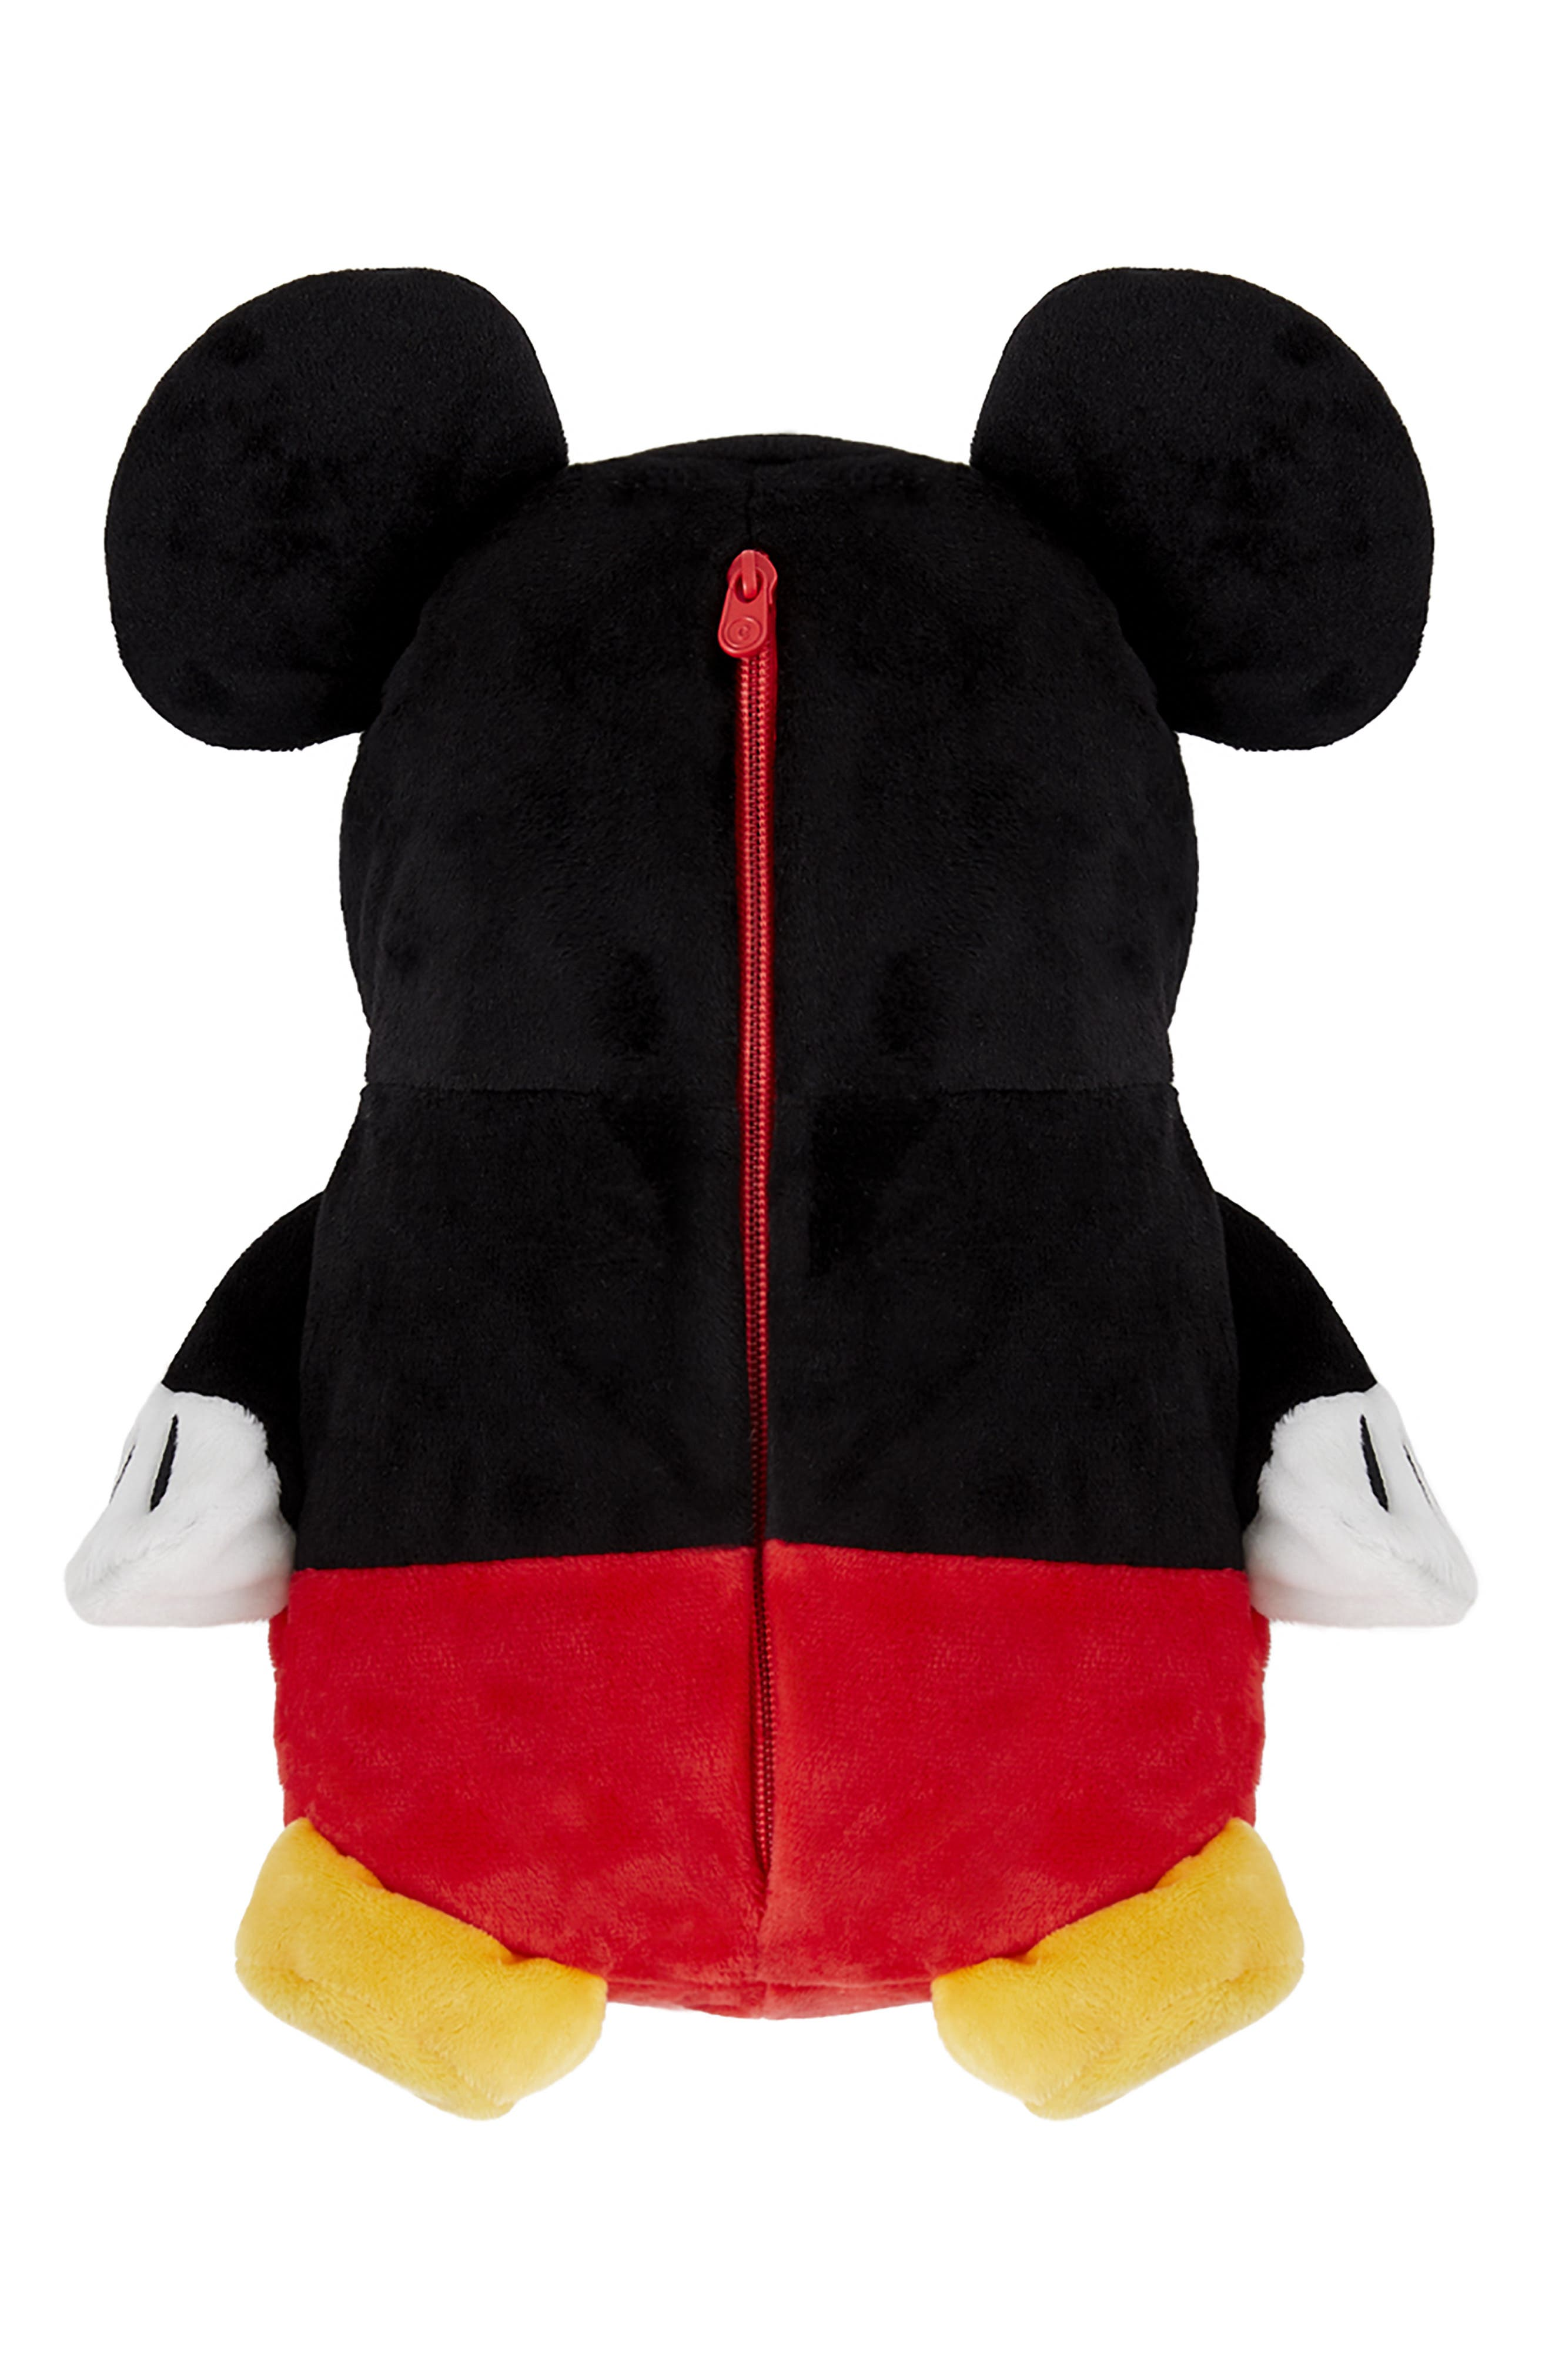 Mickey Mouse<sup>®</sup> 2-in-1 Stuffed Animal Hoodie,                             Alternate thumbnail 6, color,                             BLACK / RED MIX